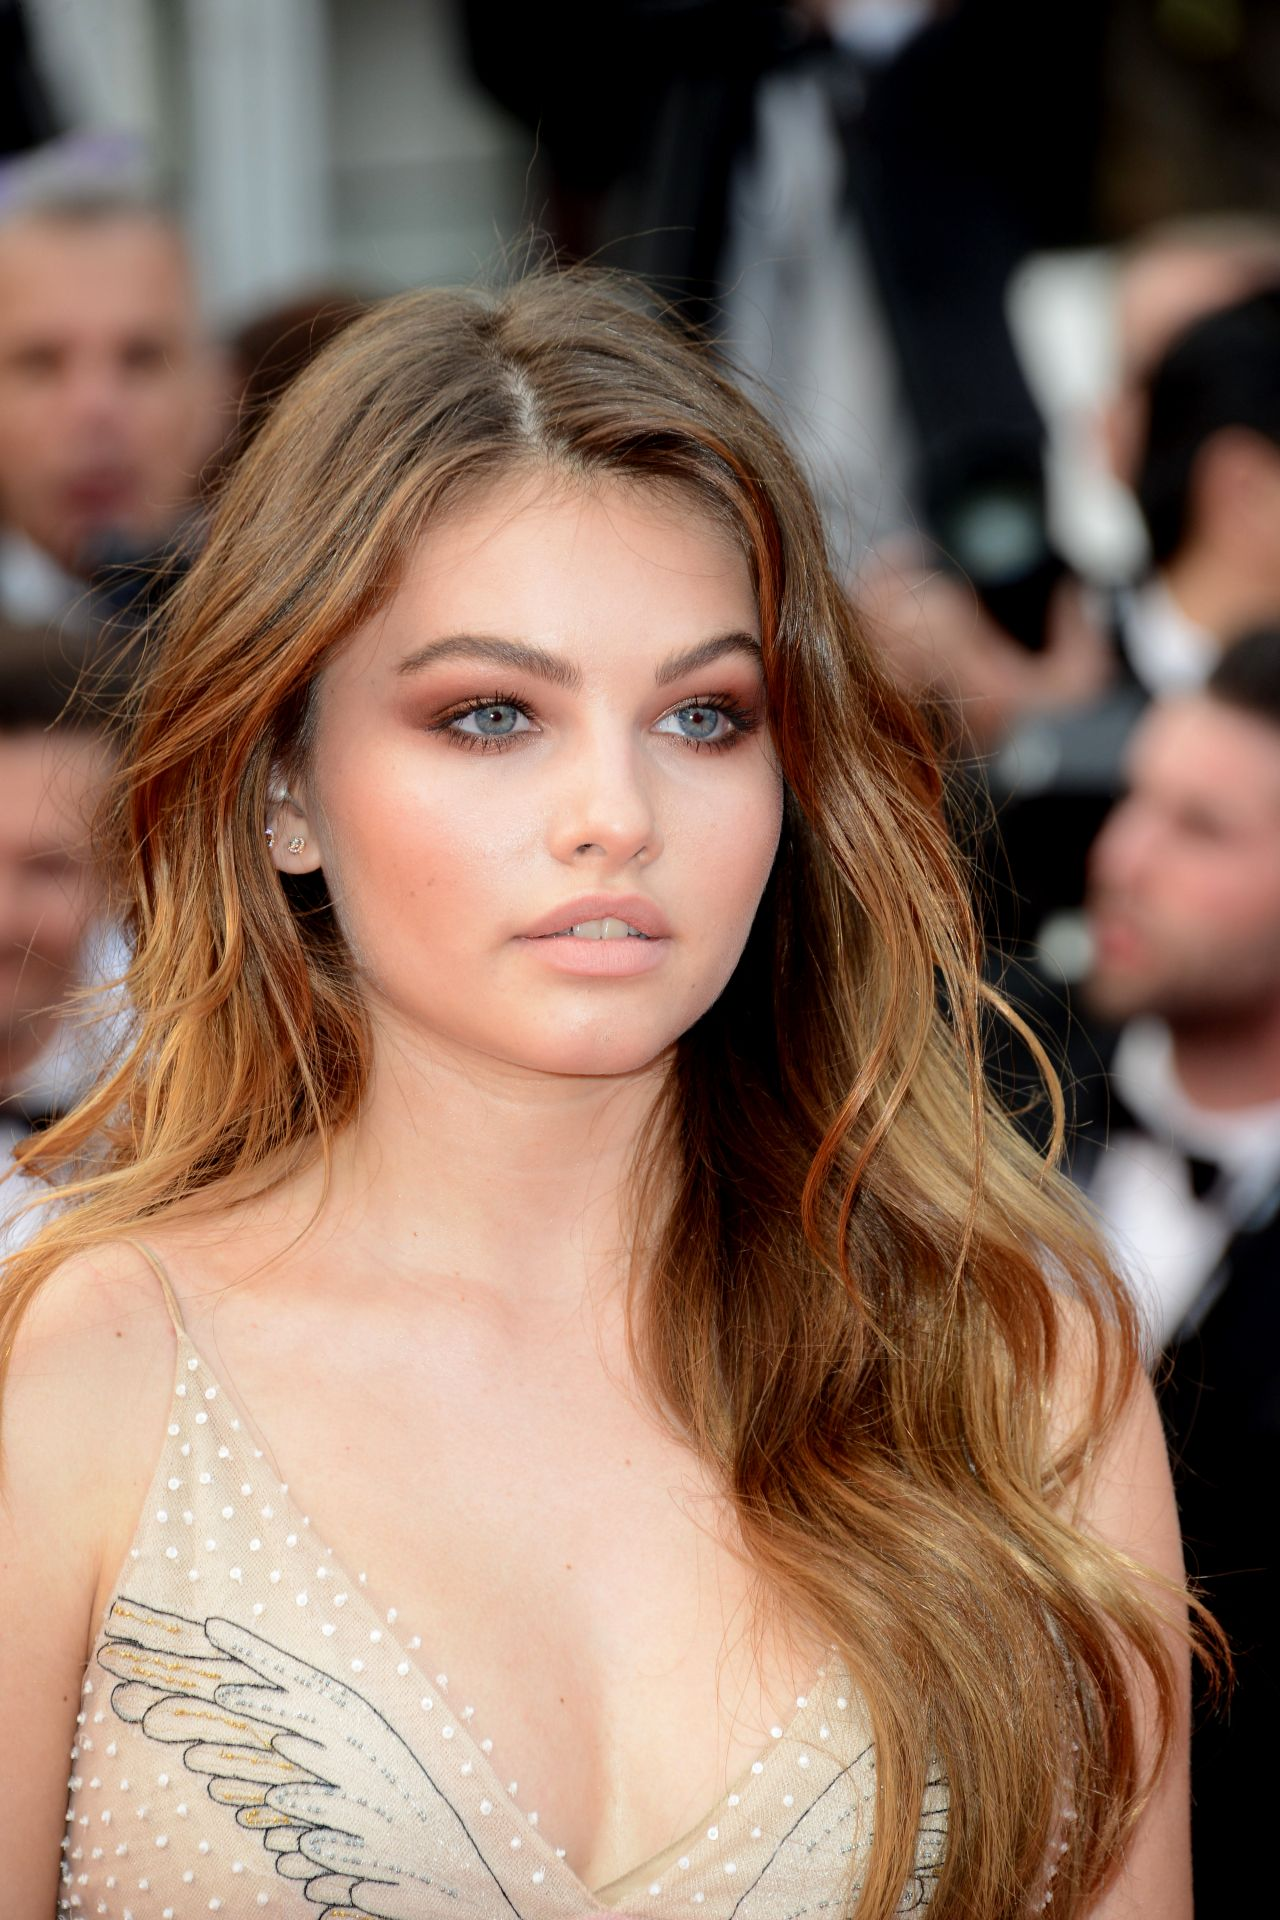 Thylane Blondeau Loveless Premiere At Cannes Film Festival 05 18 2017